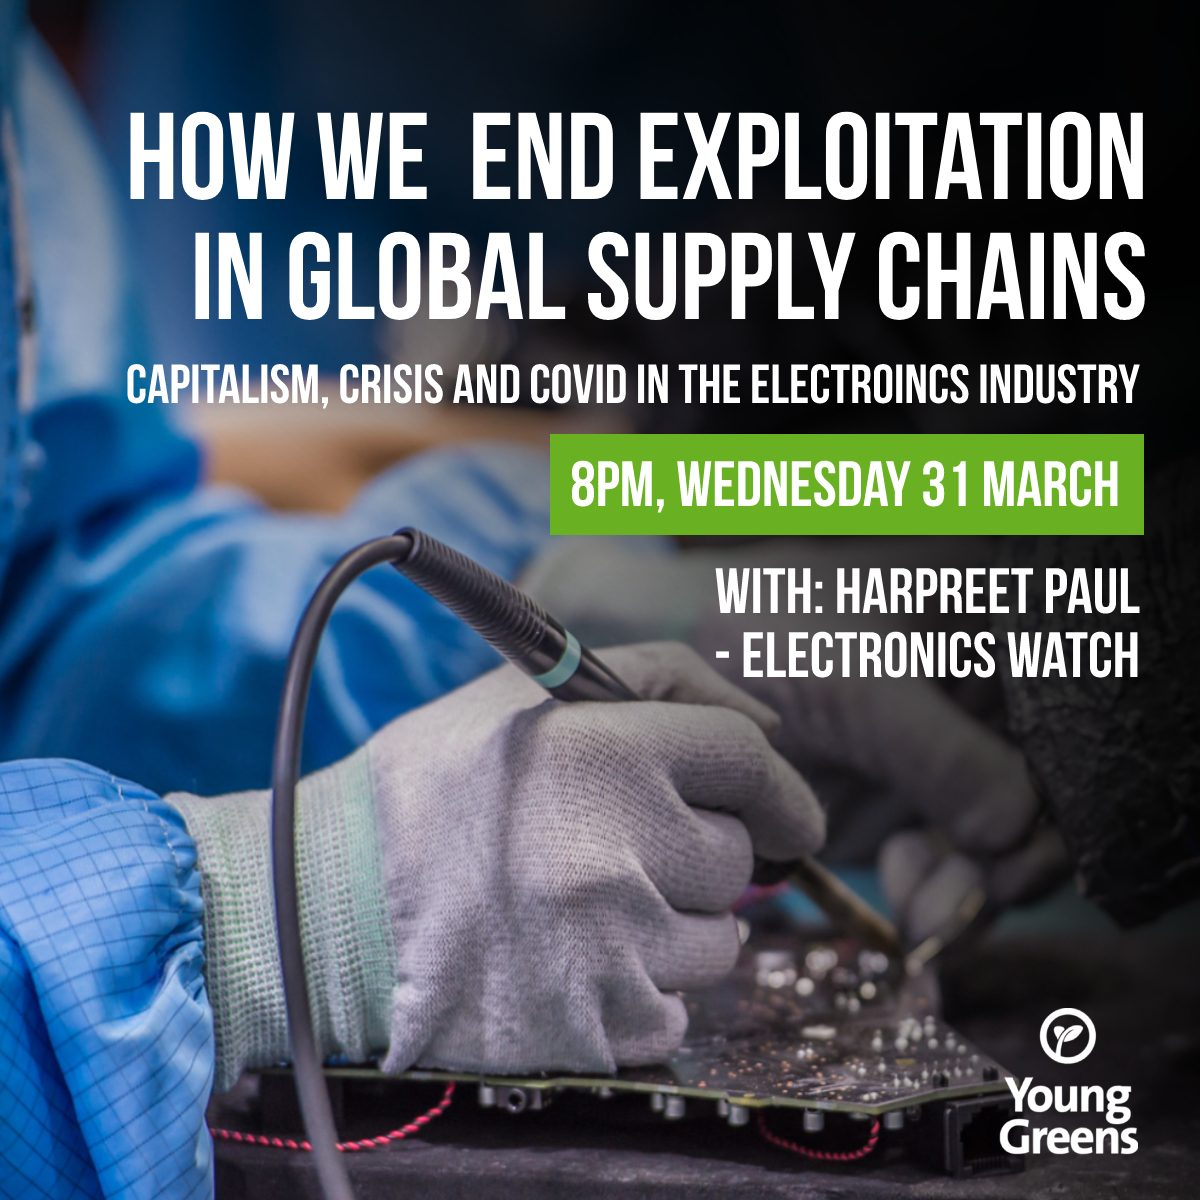 How we end exploitation in global supply chains